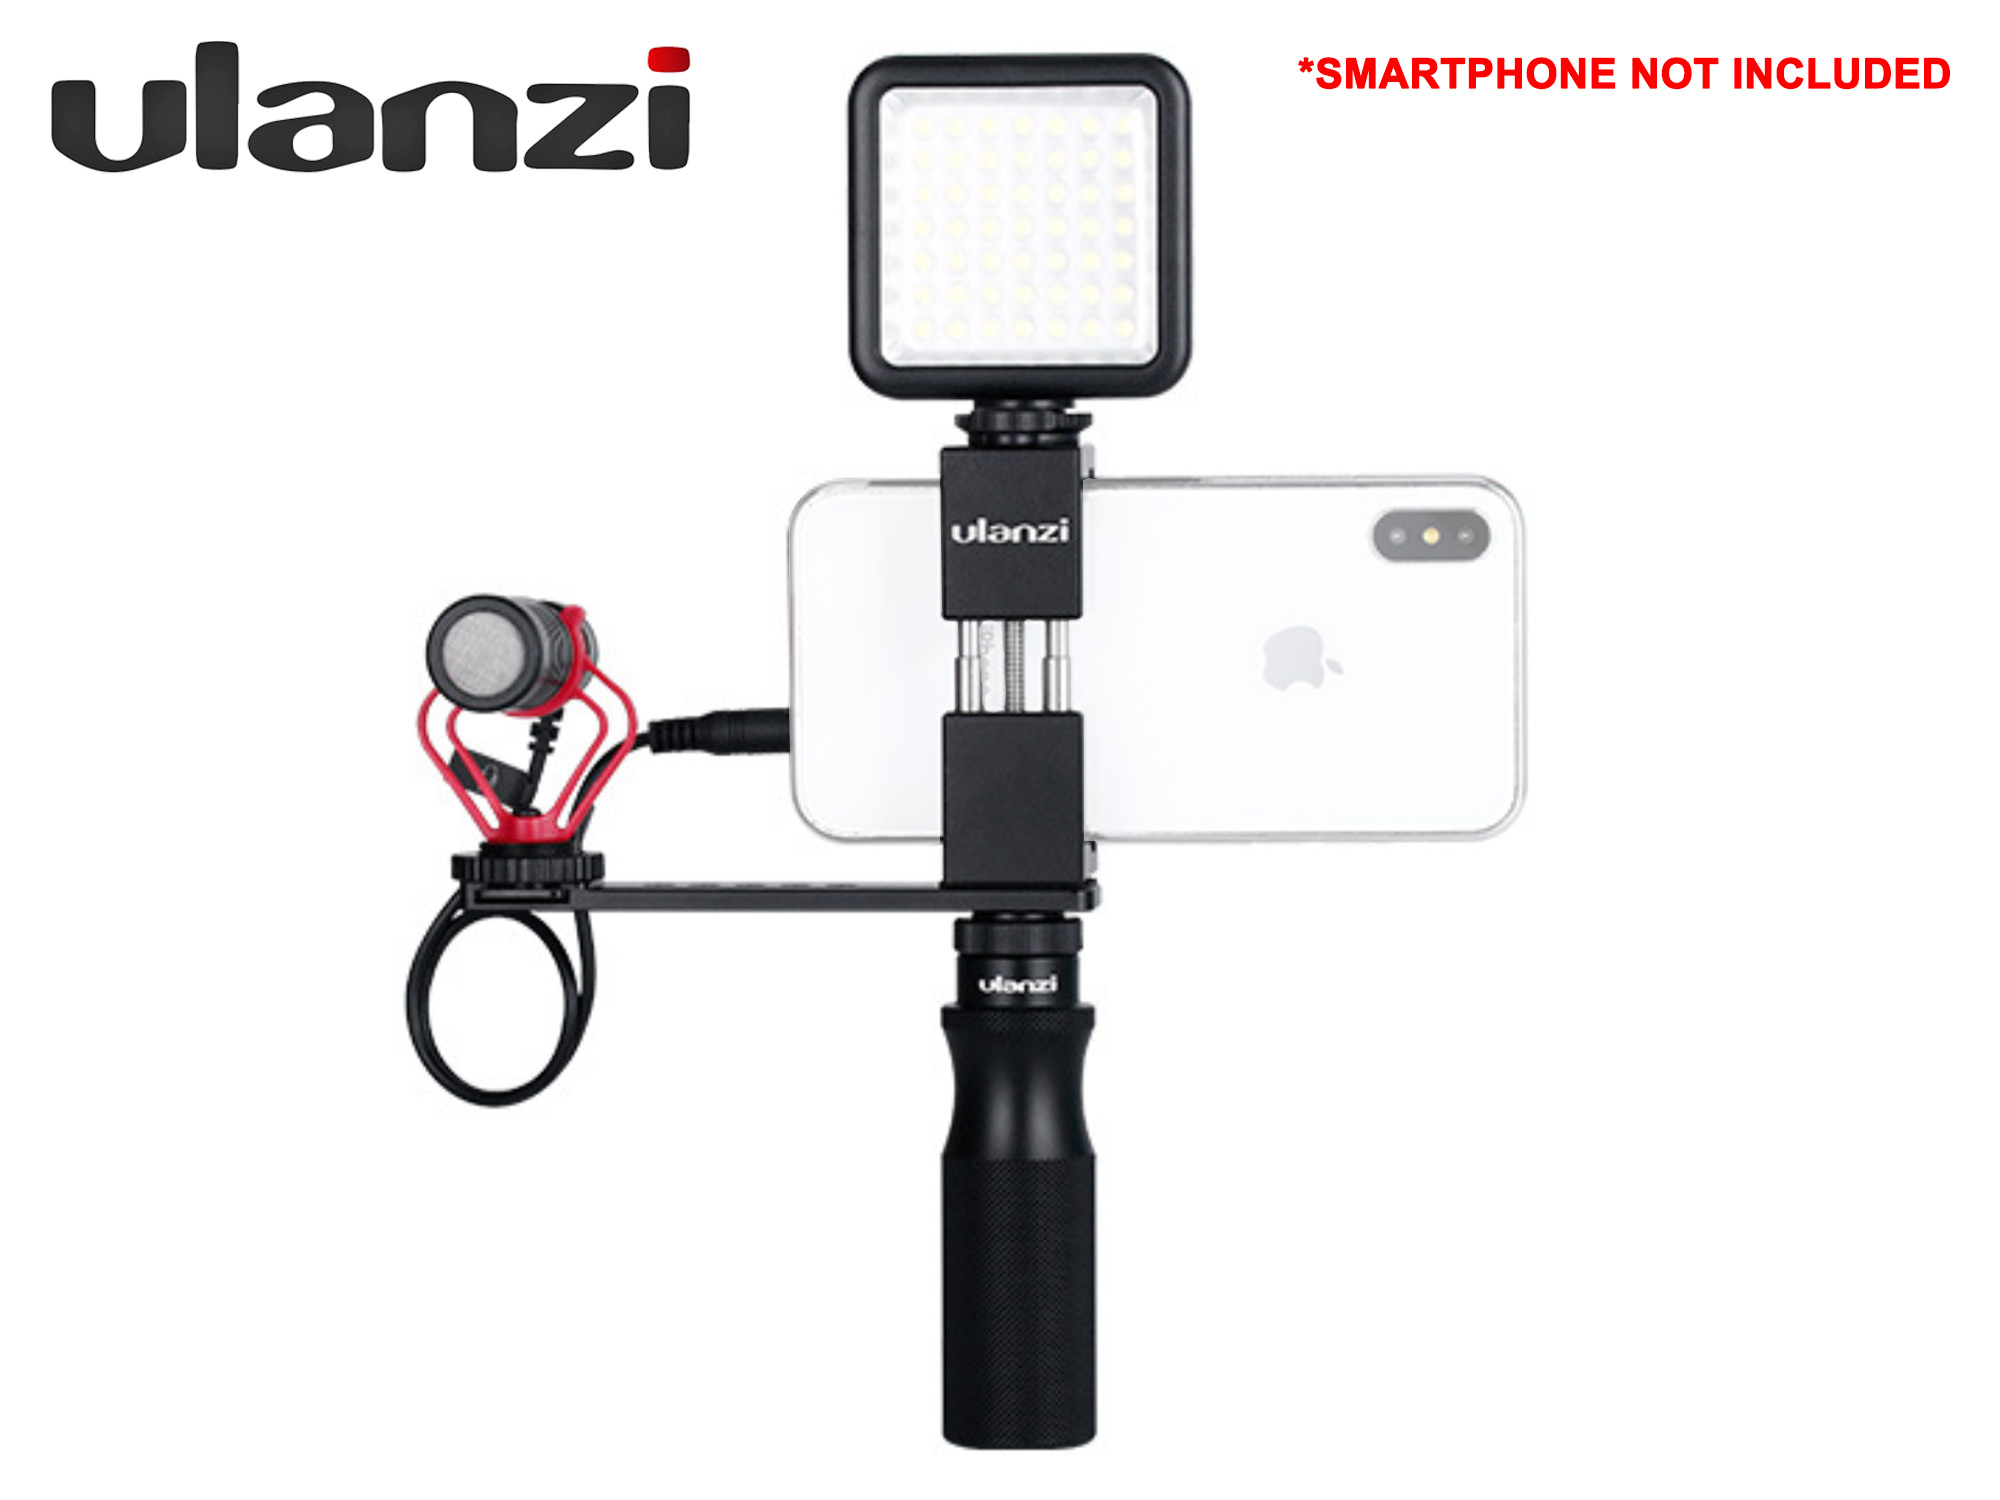 Ulanzi Vlogging Set - Microphone + Phone Grip + Handle + Extension Bracket + LED Light